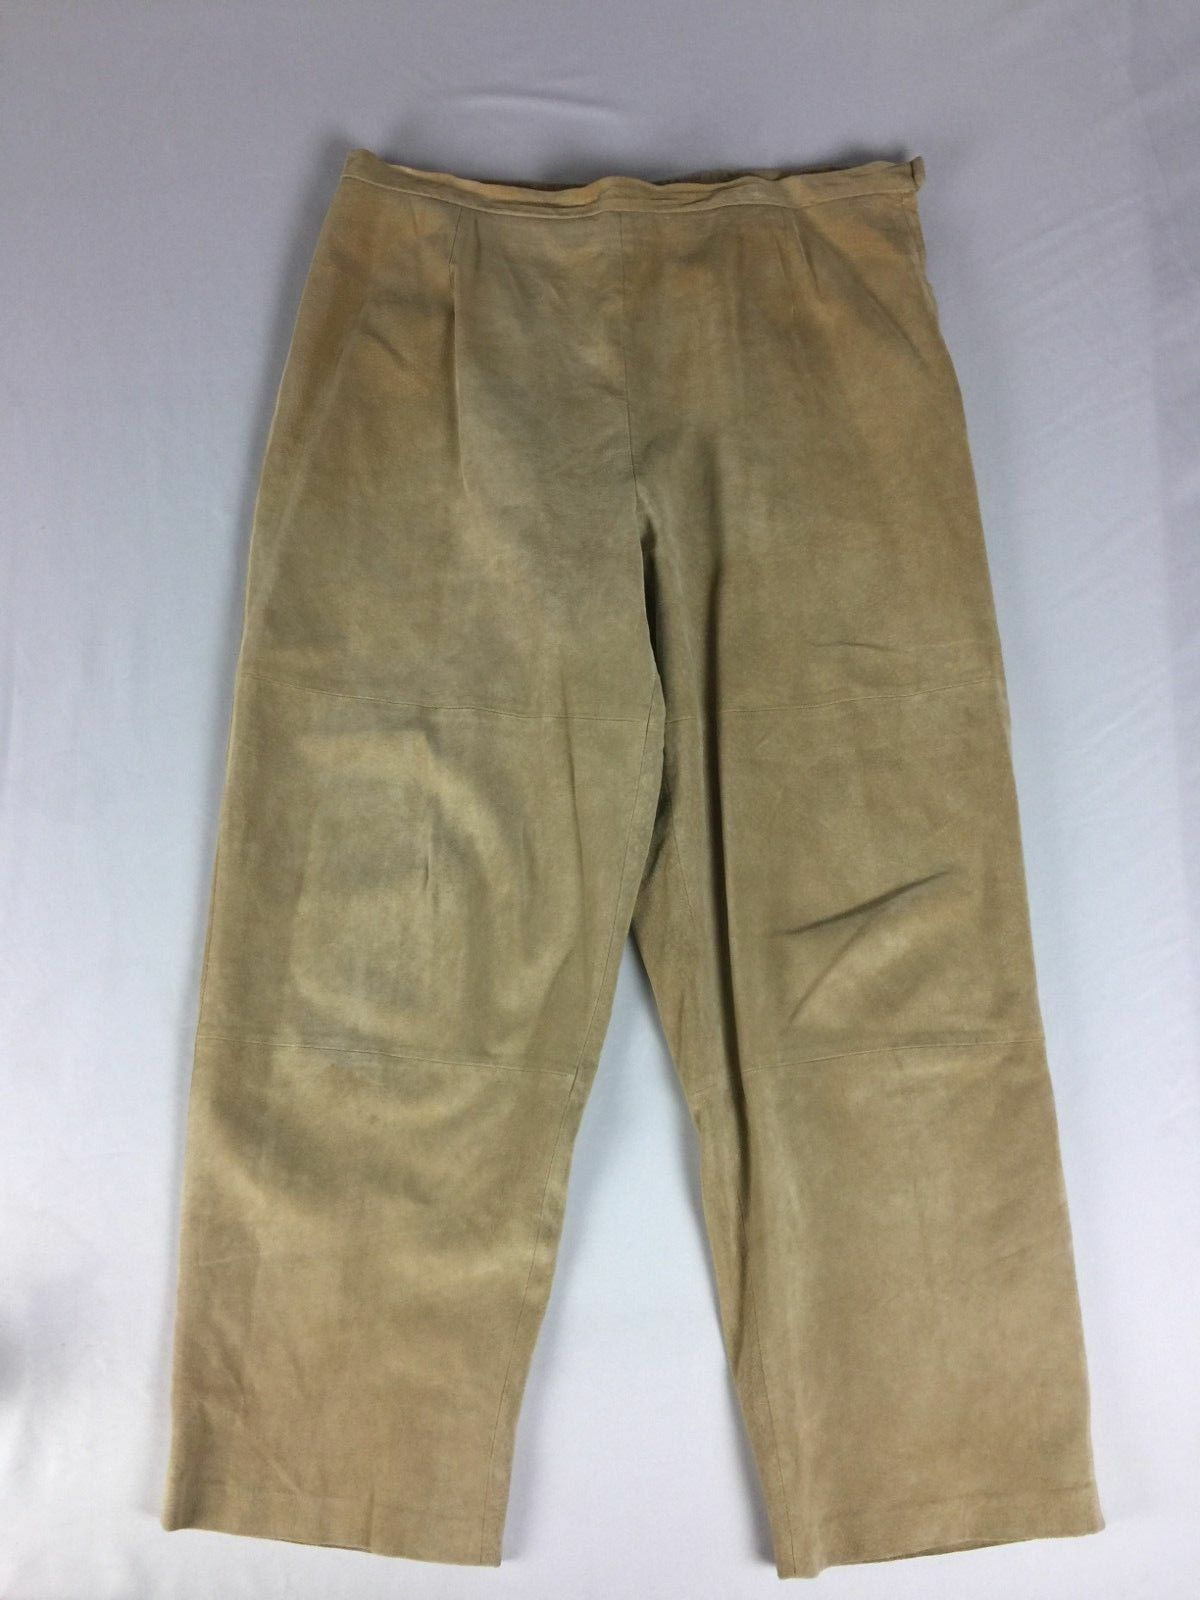 Terry Lewis Classic Luxuries Womens Pants Size 20P Tan Leather Side Zip